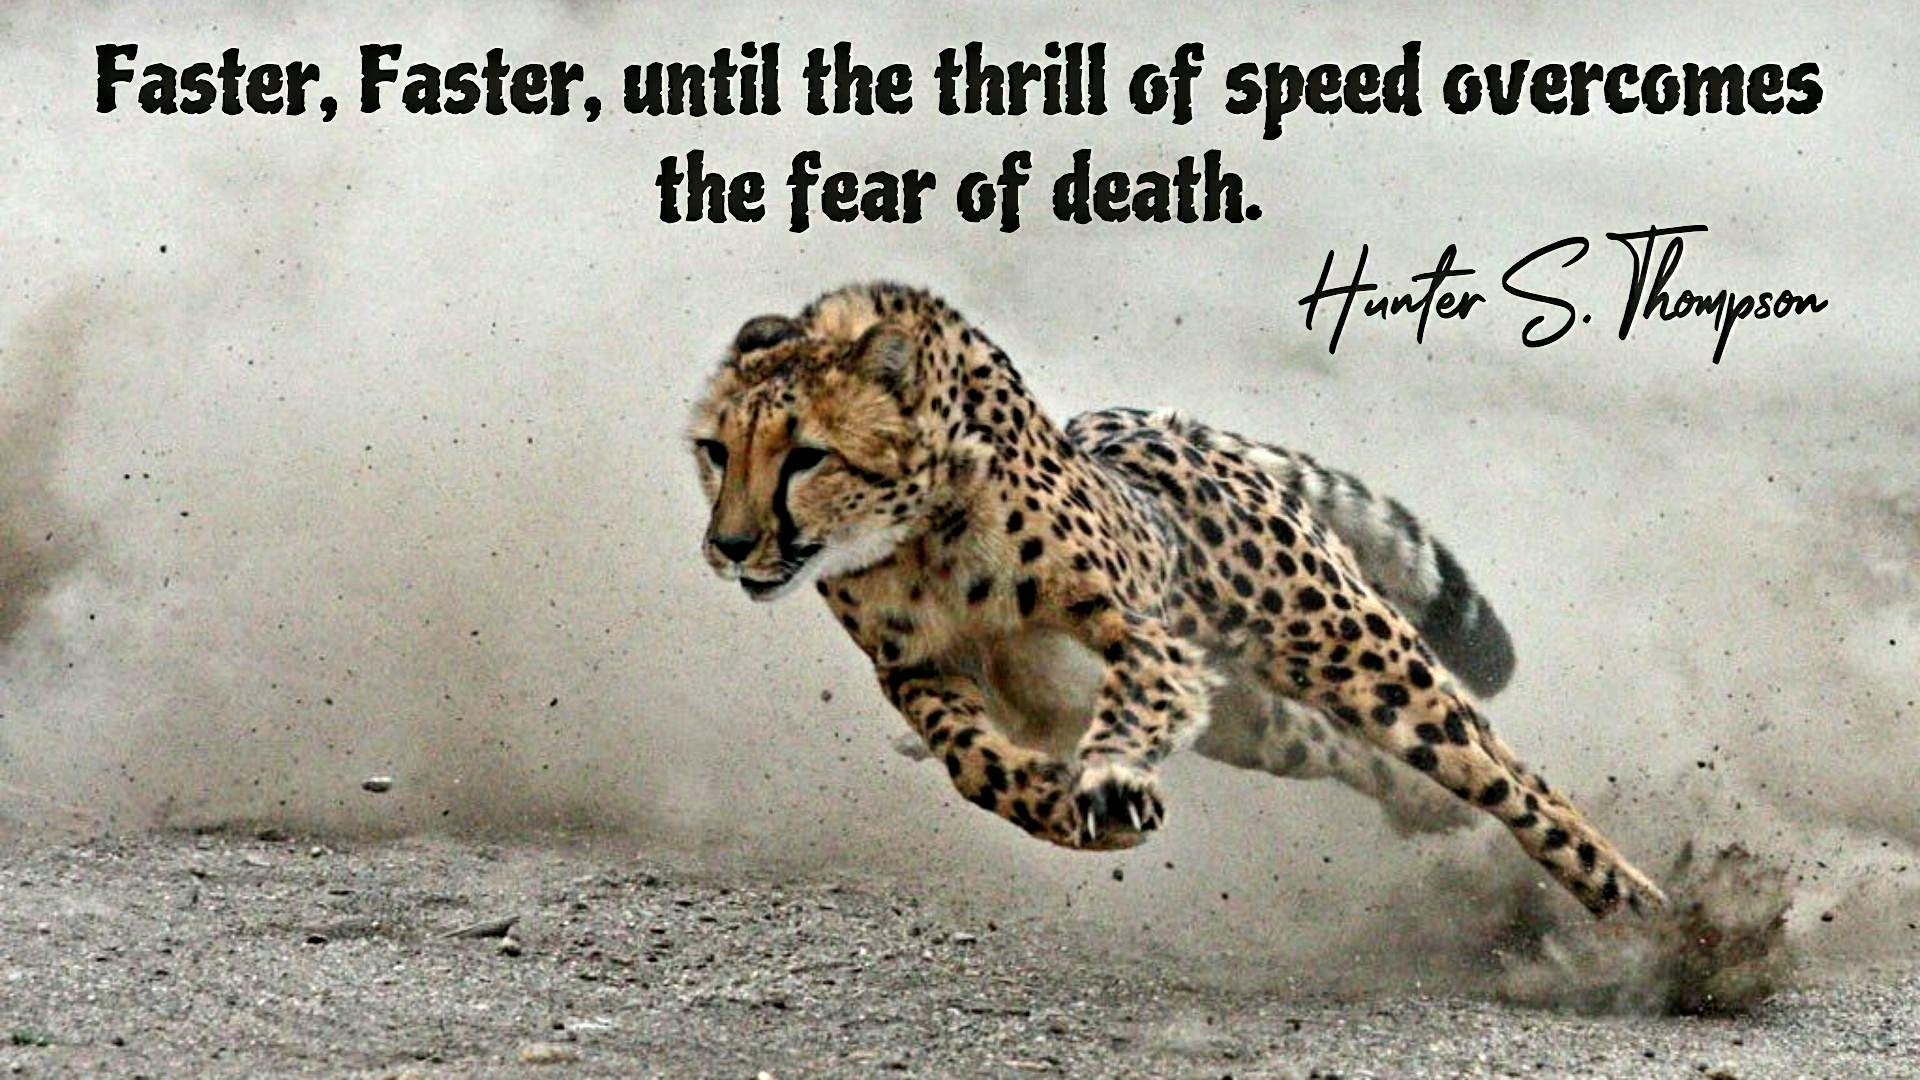 [Image]The thrill of speed overcomes the fear of death.